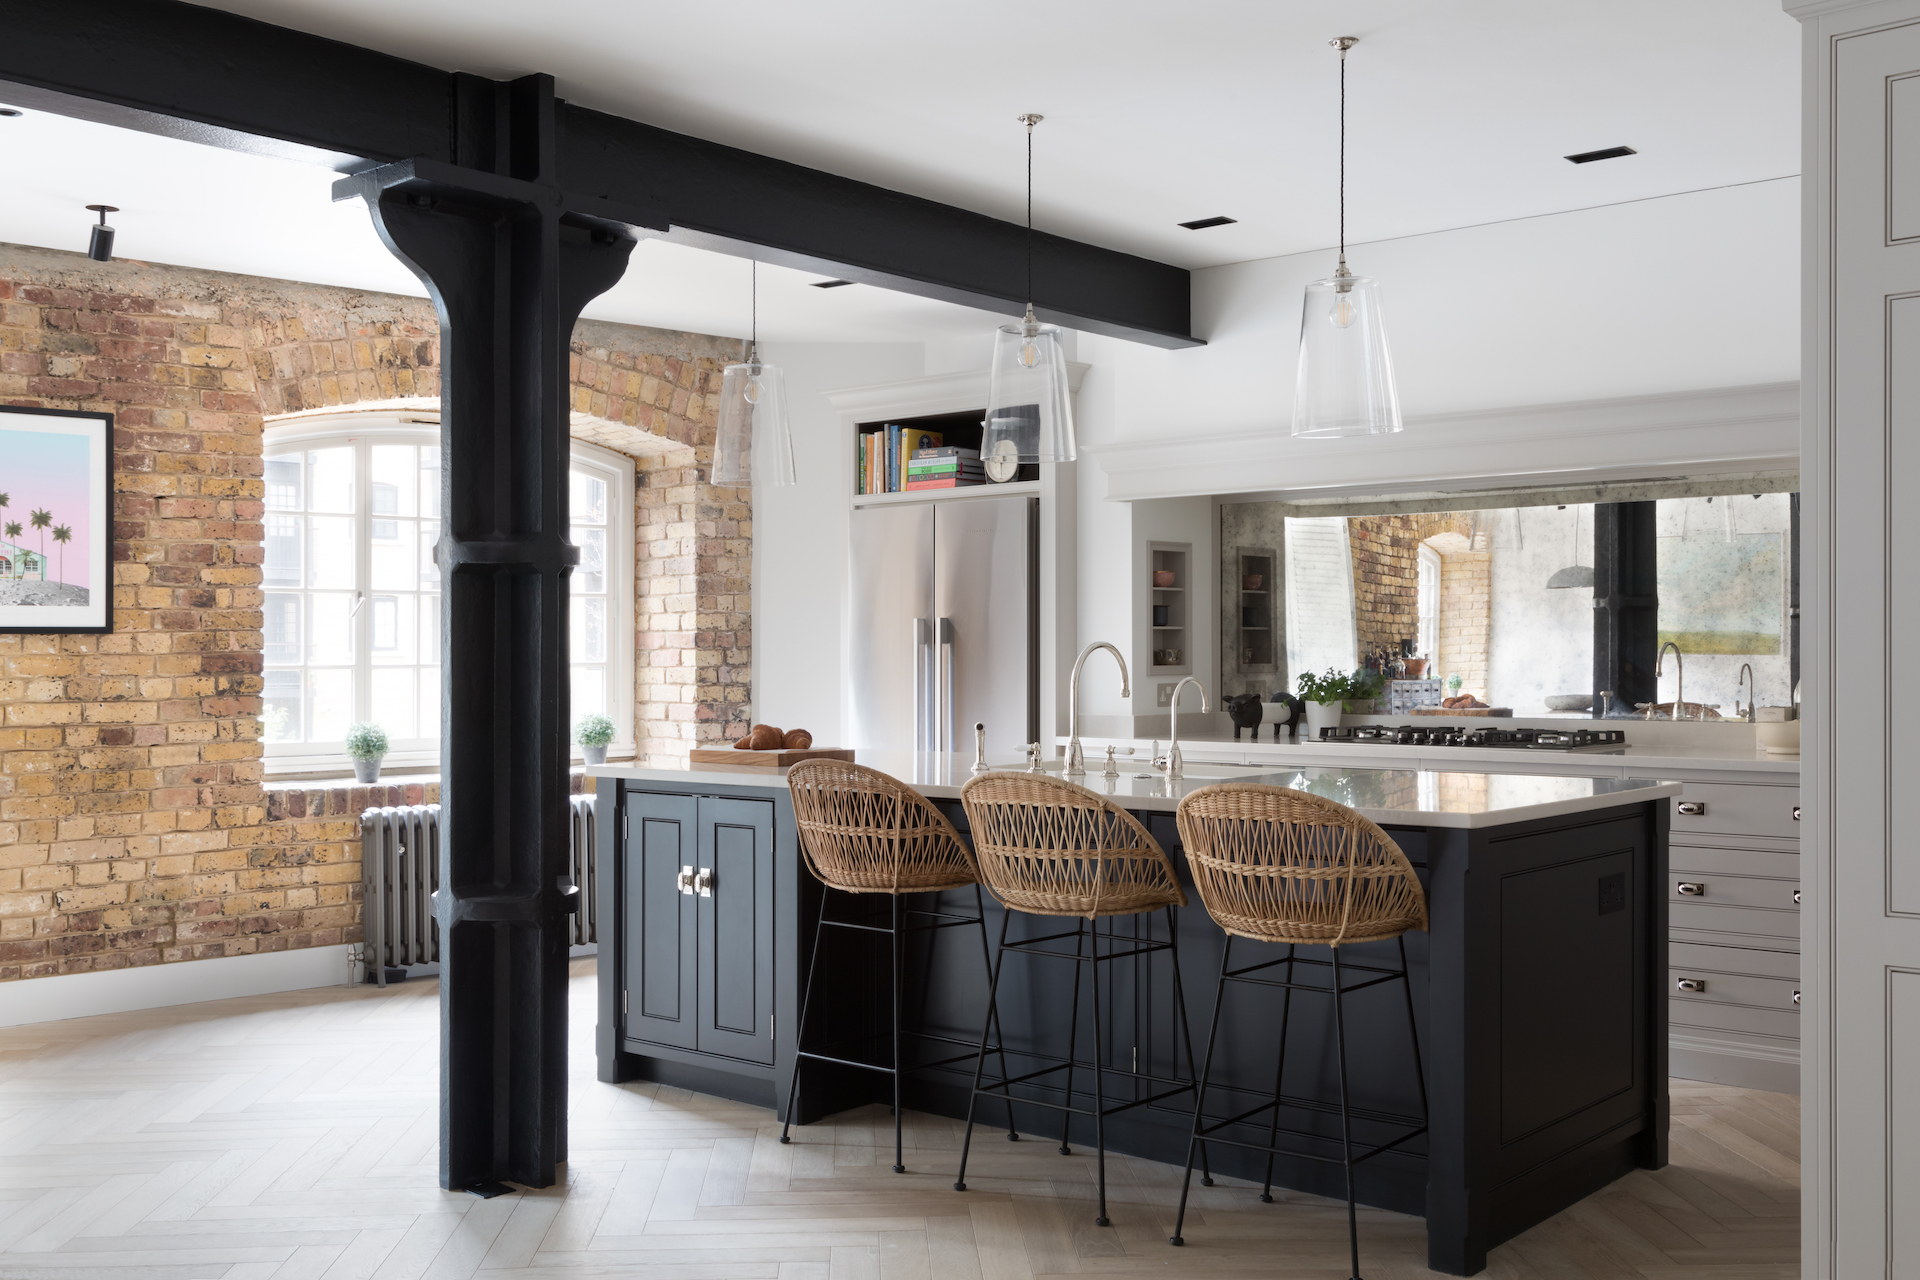 How To Plan Your Kitchen Project | Q&A With Creative Director Louisa Eggleston